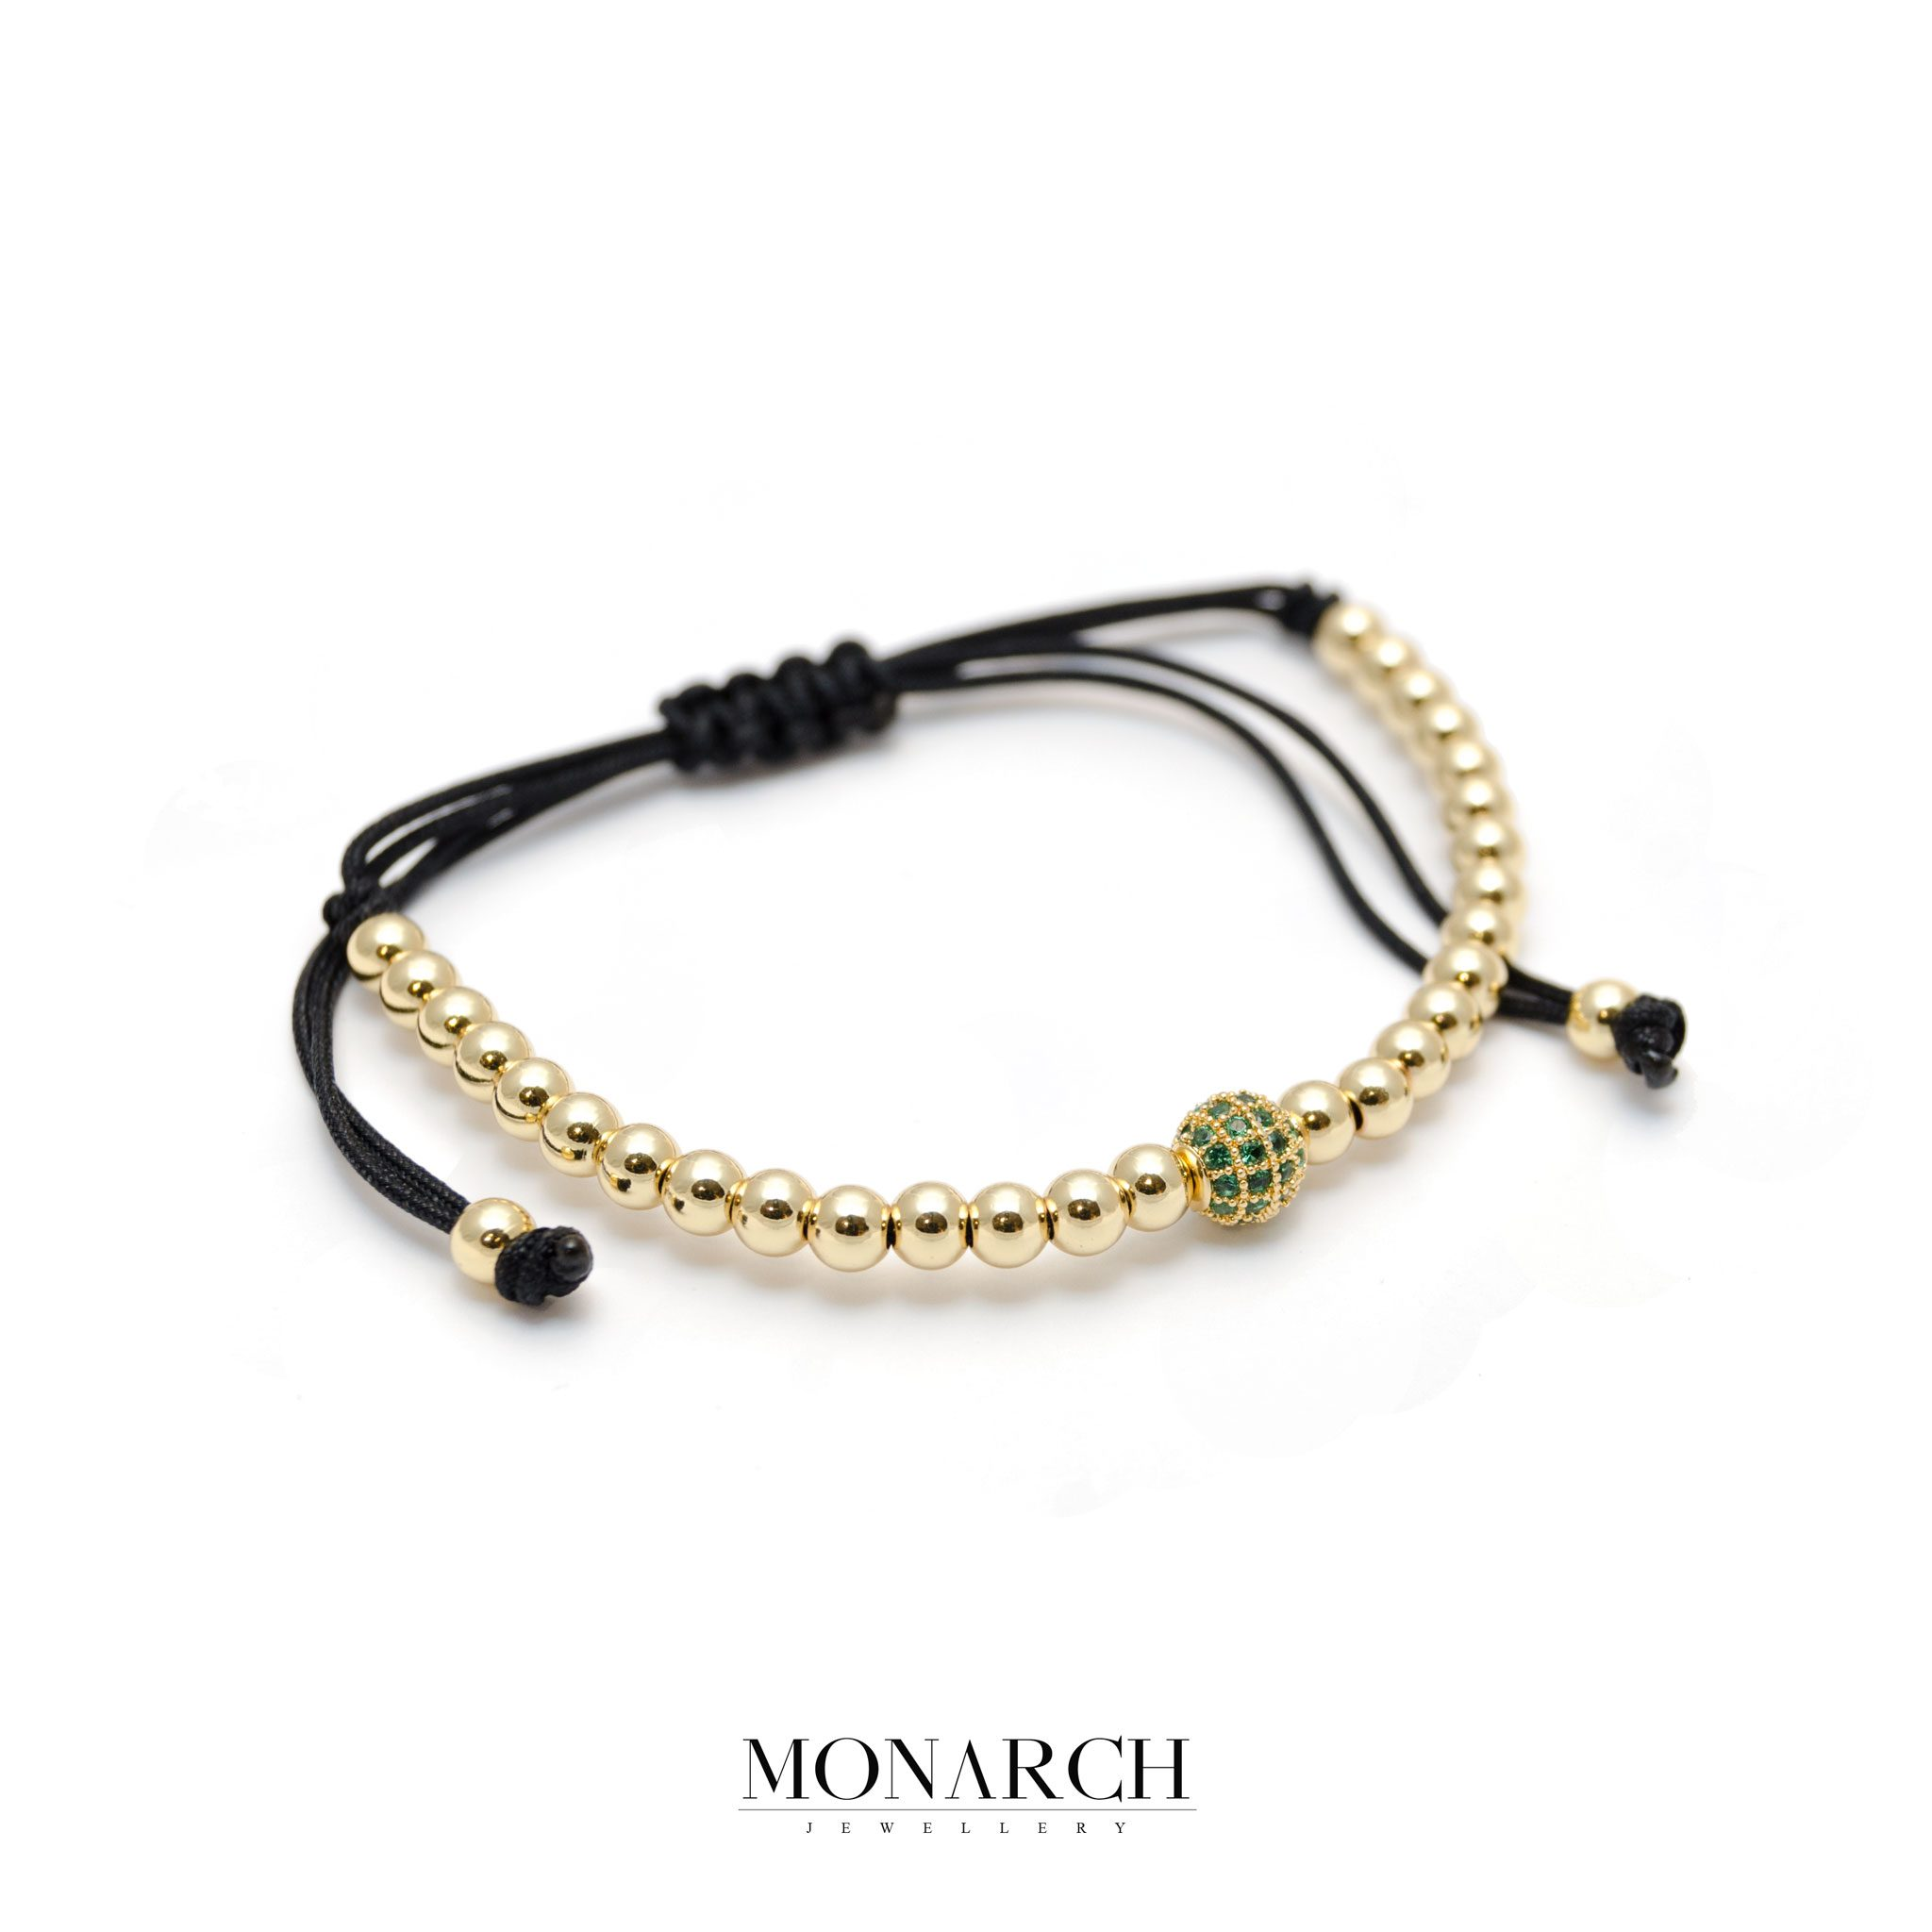 Monarch Jewellery 24k Gold Emerald Solo Zircon Macrame Bracelet